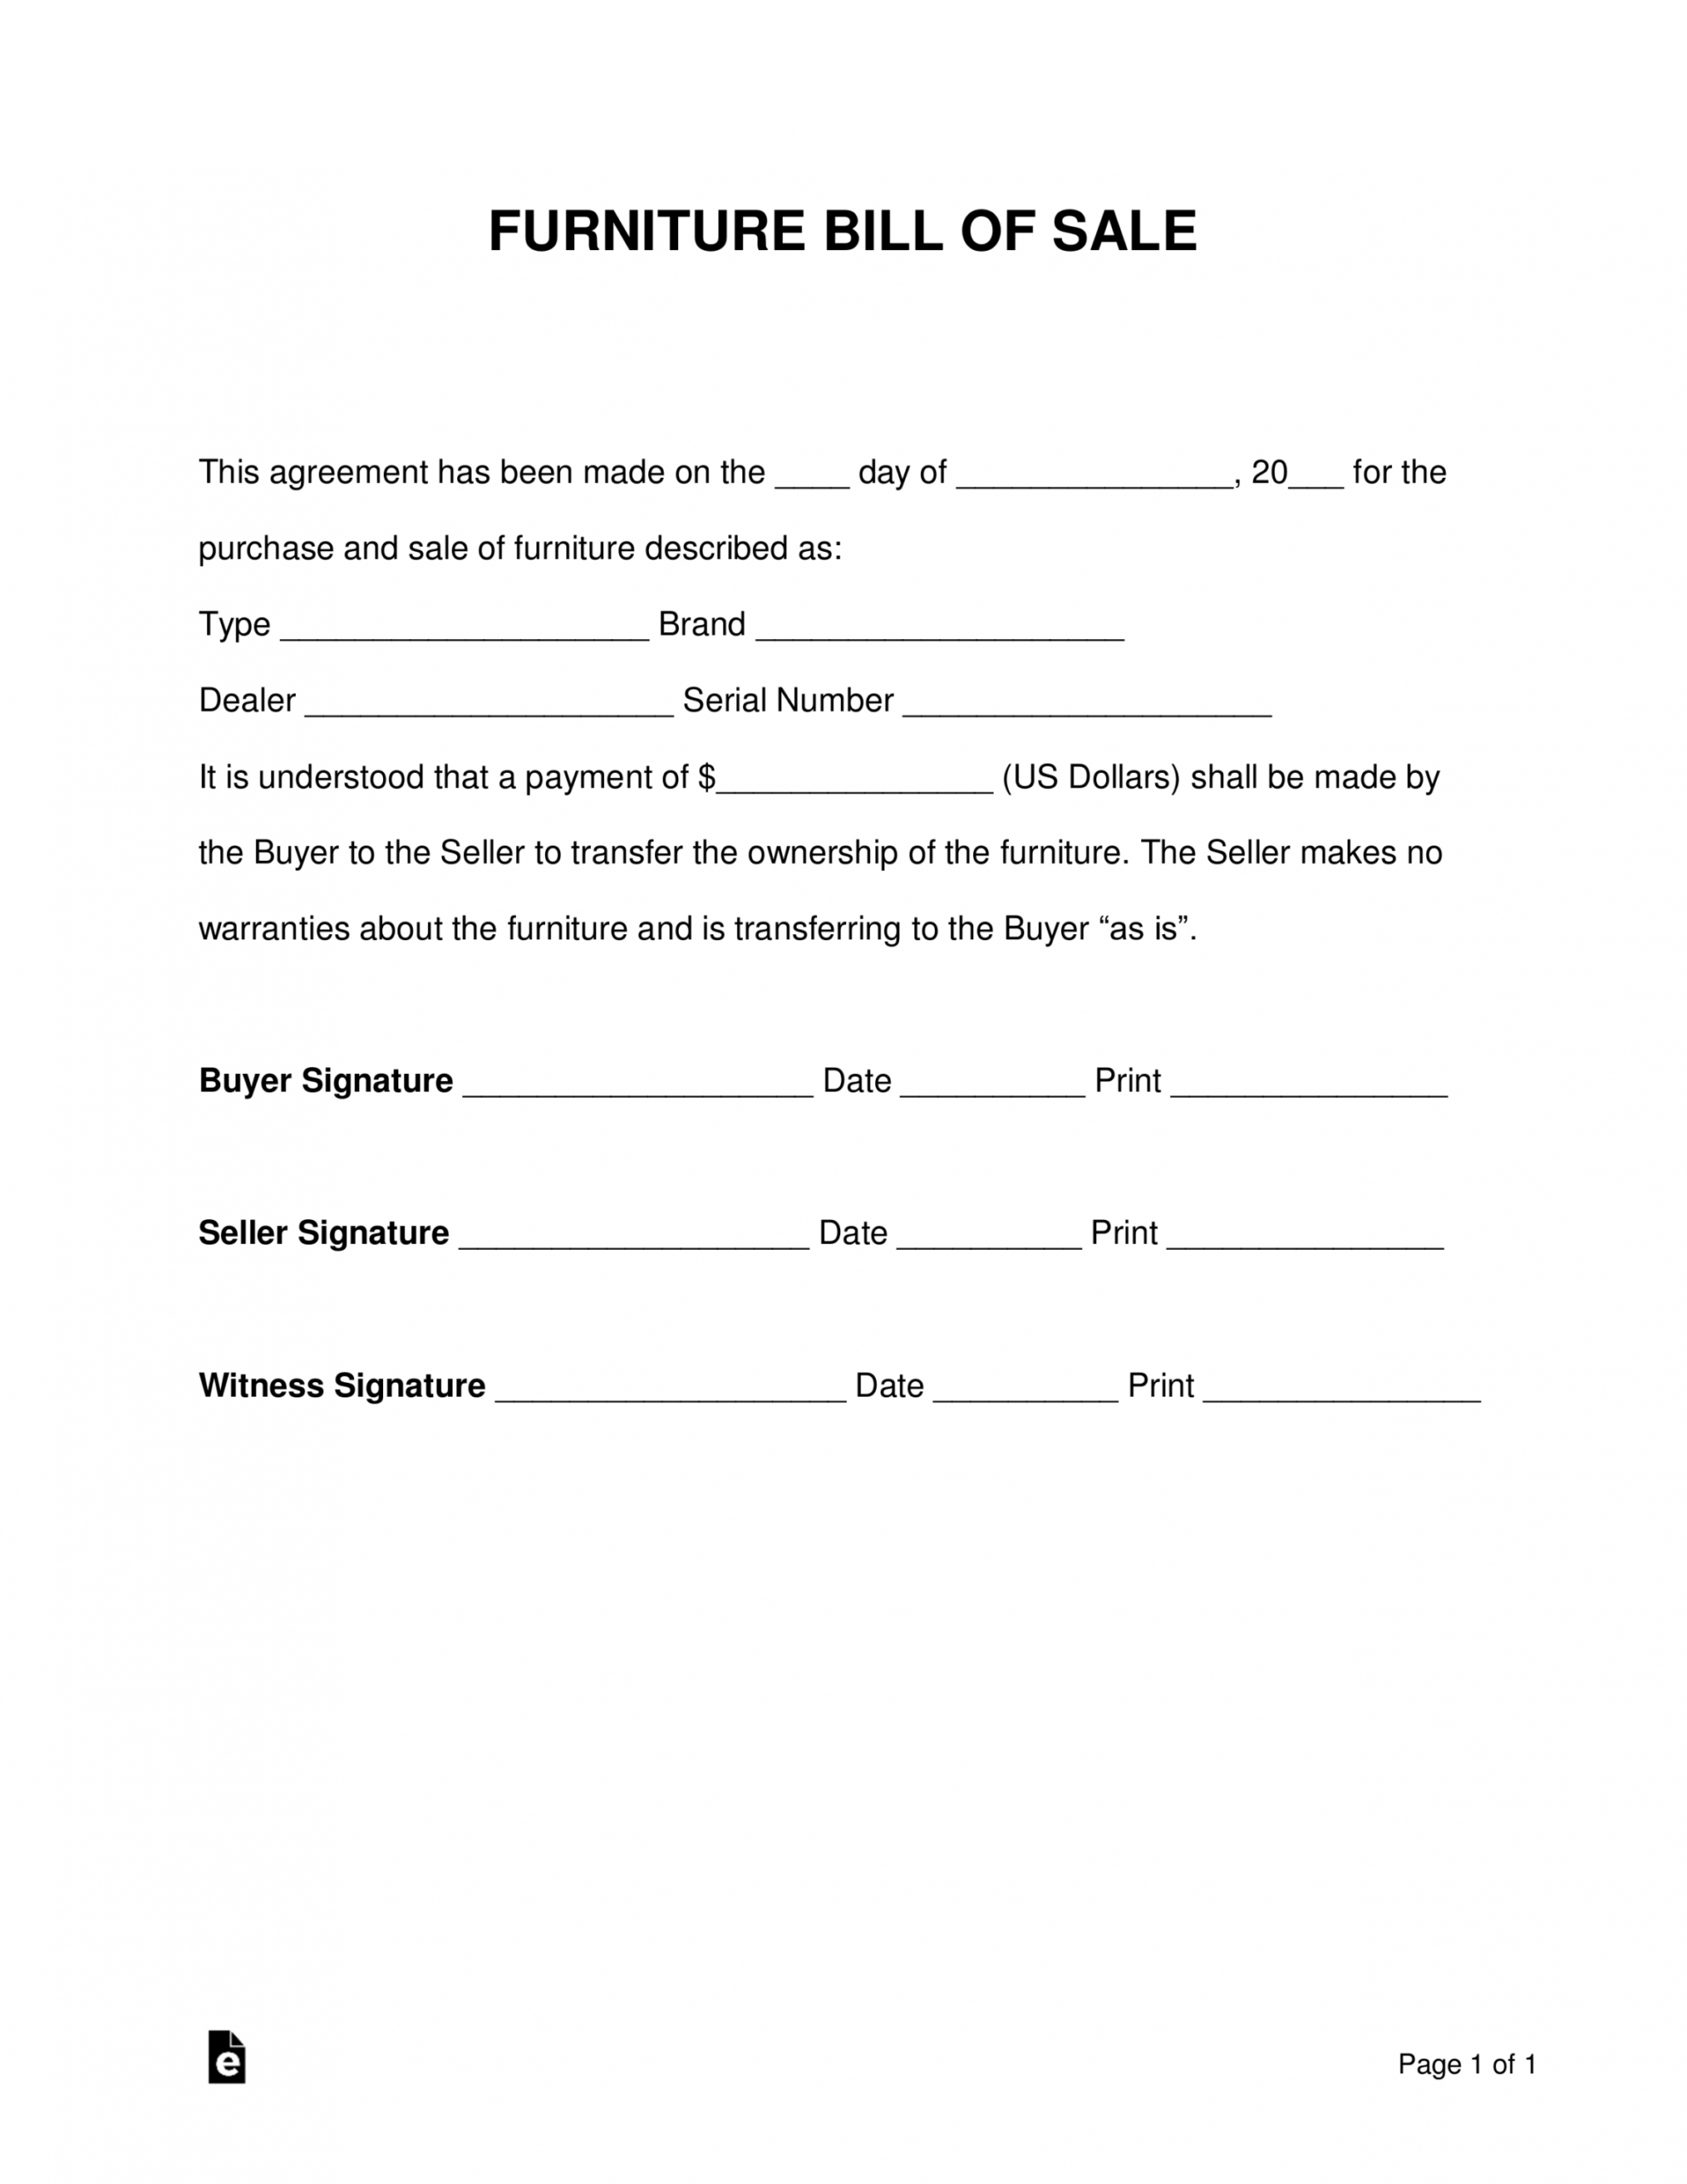 editable free furniture bill of sale form  pdf  word  eforms furniture purchase agreement template sample